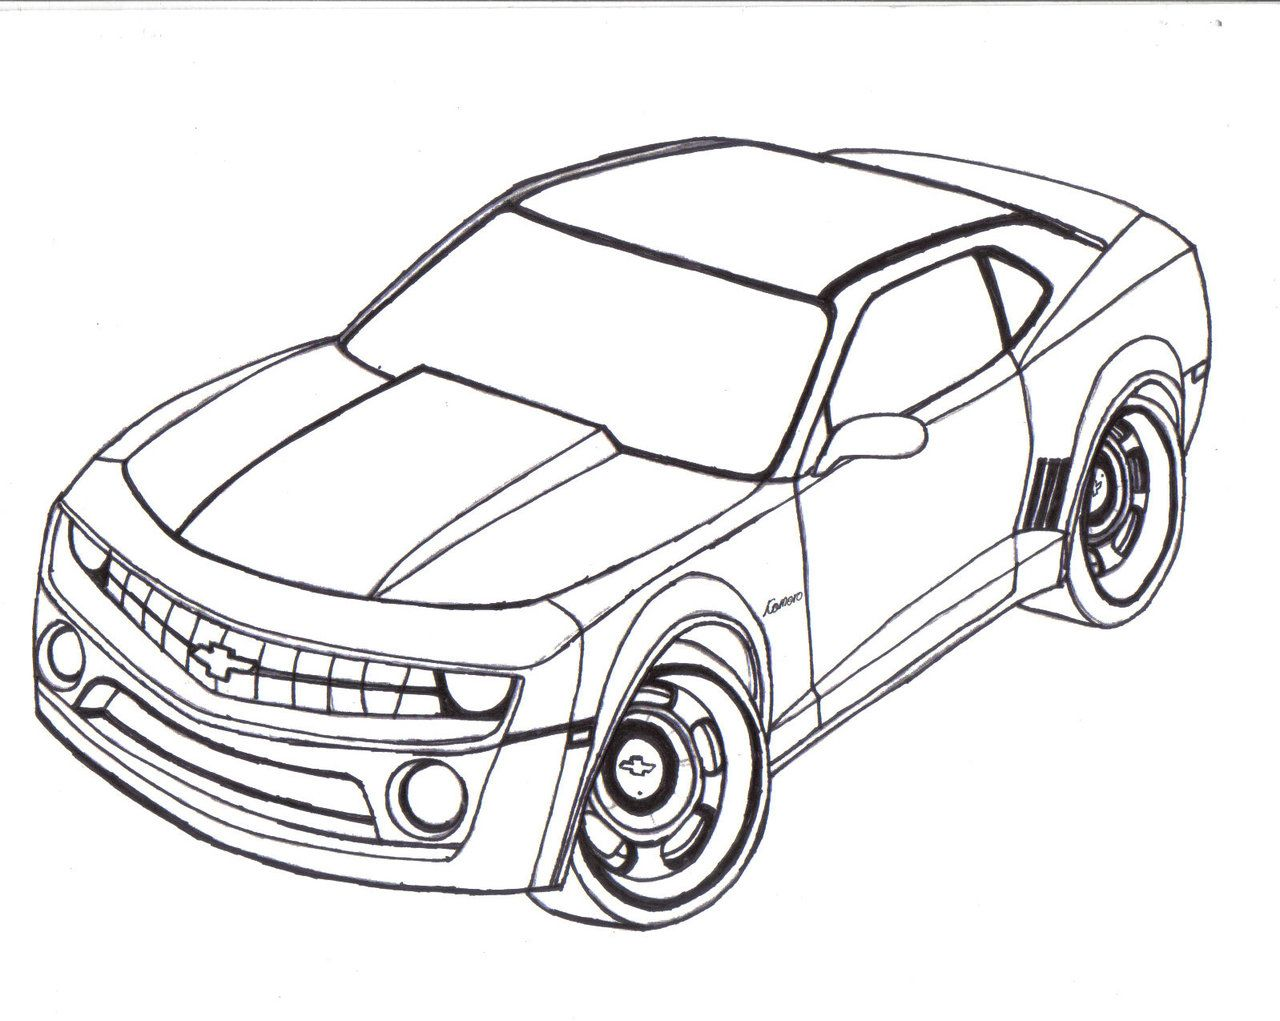 Chevy Cars Camaro 69 Coloring Pages - chevy Coloring Pages : iKids ...